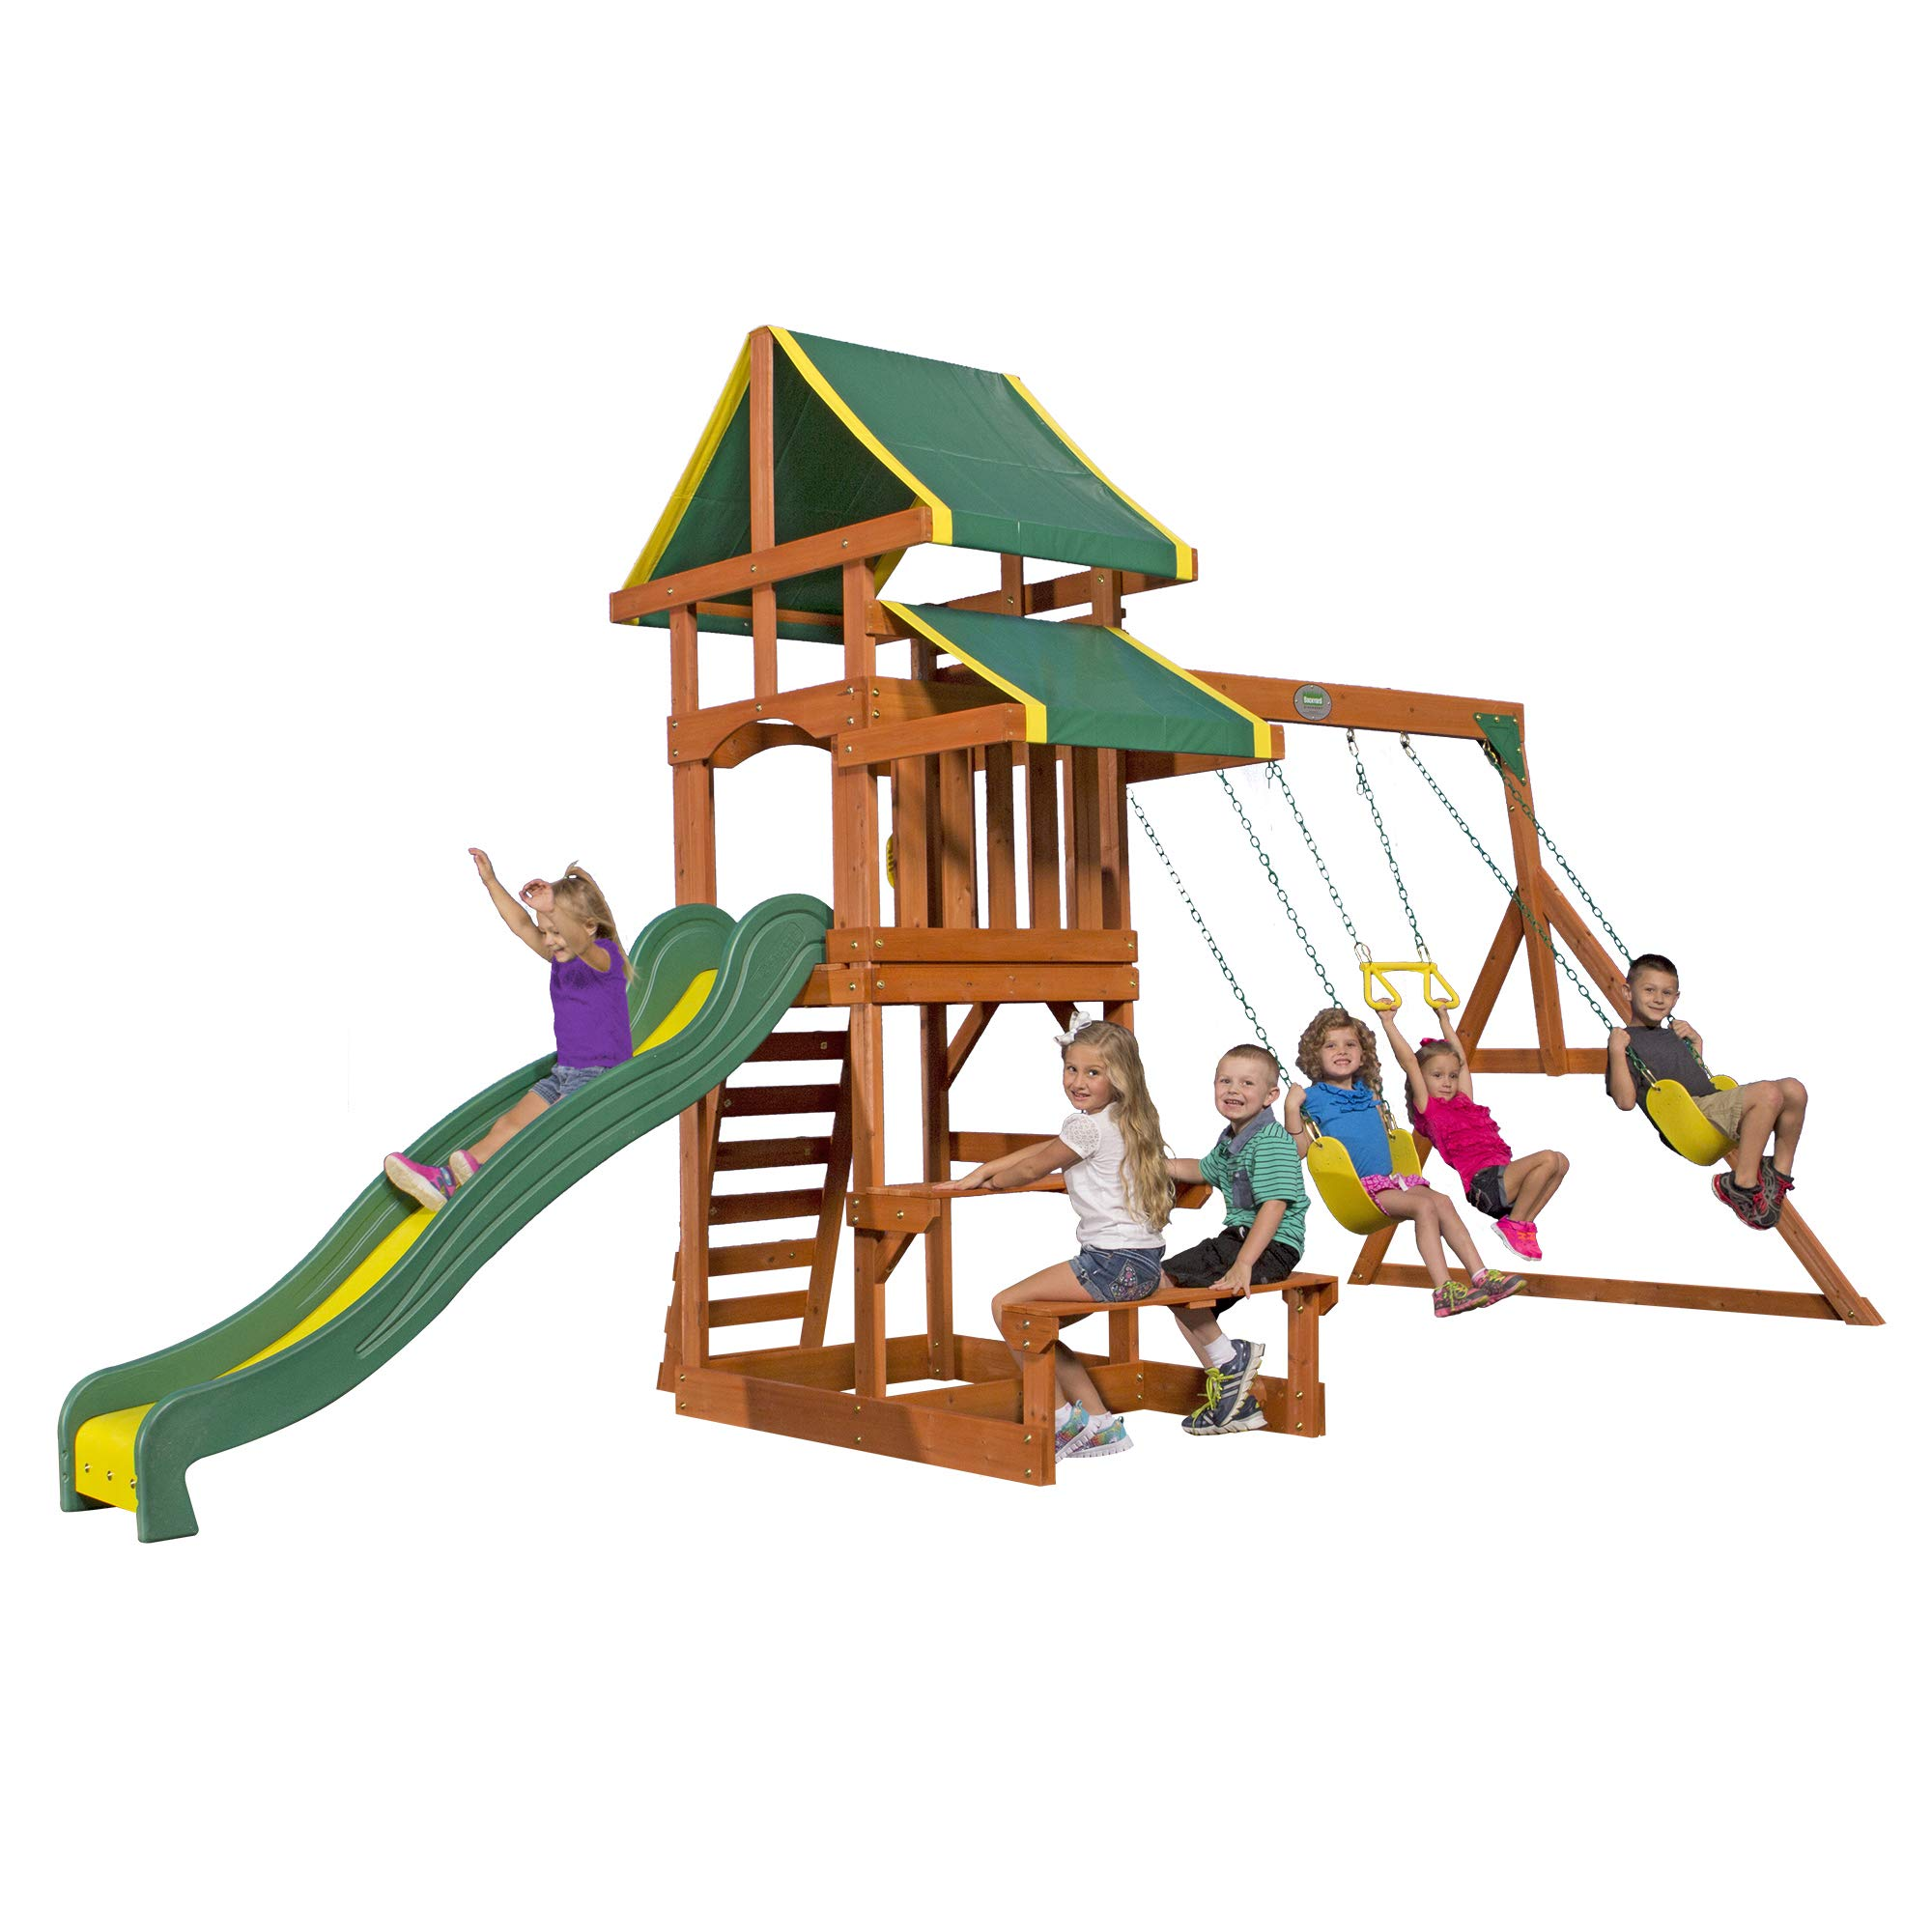 Backyard Discovery Tucson All Cedar Wood Playset Swing Set by Backyard Discovery (Image #1)